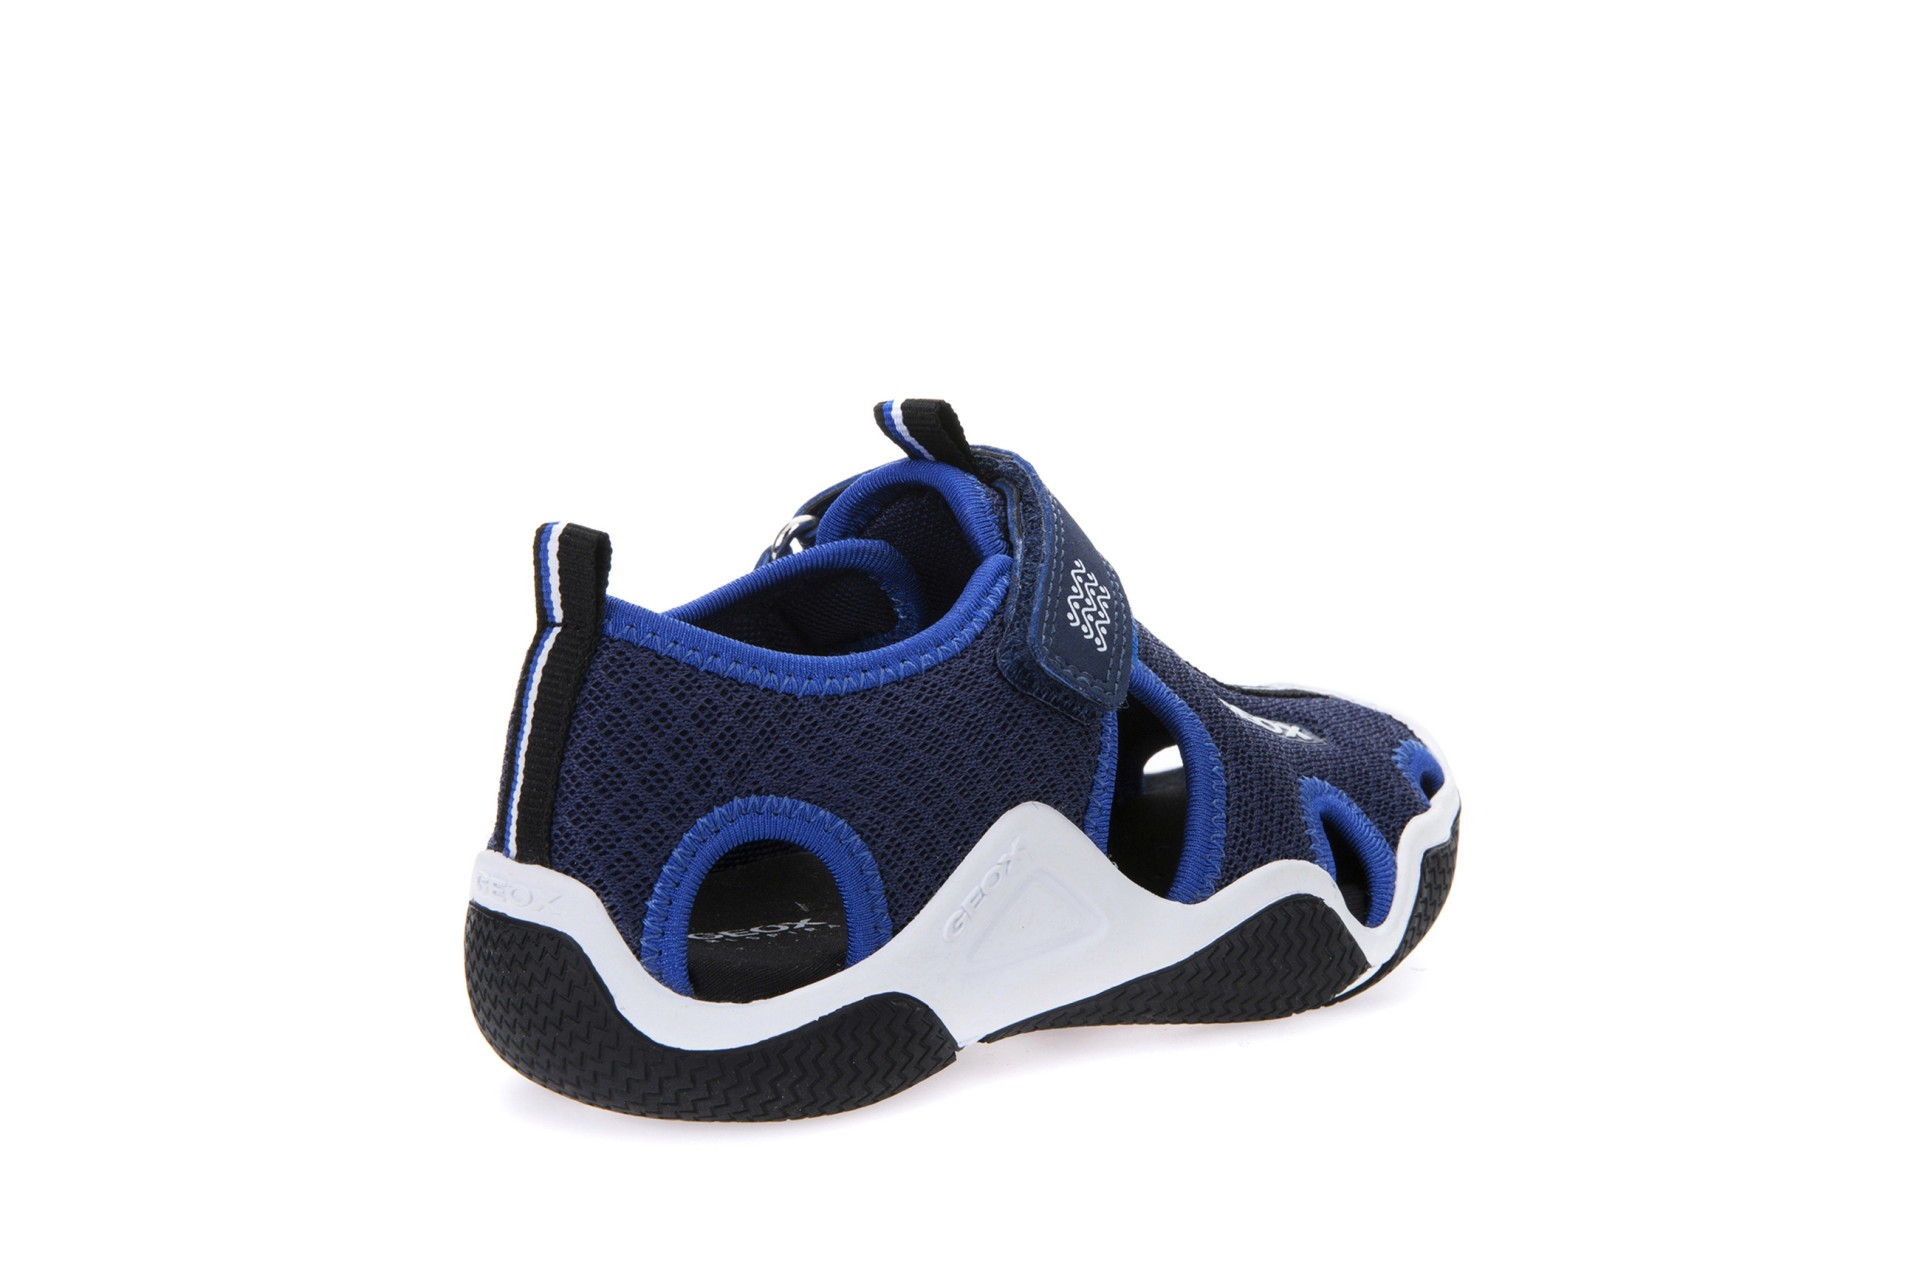 Geox Wader Navy Blue Sandals Geox Kids Shoes Little